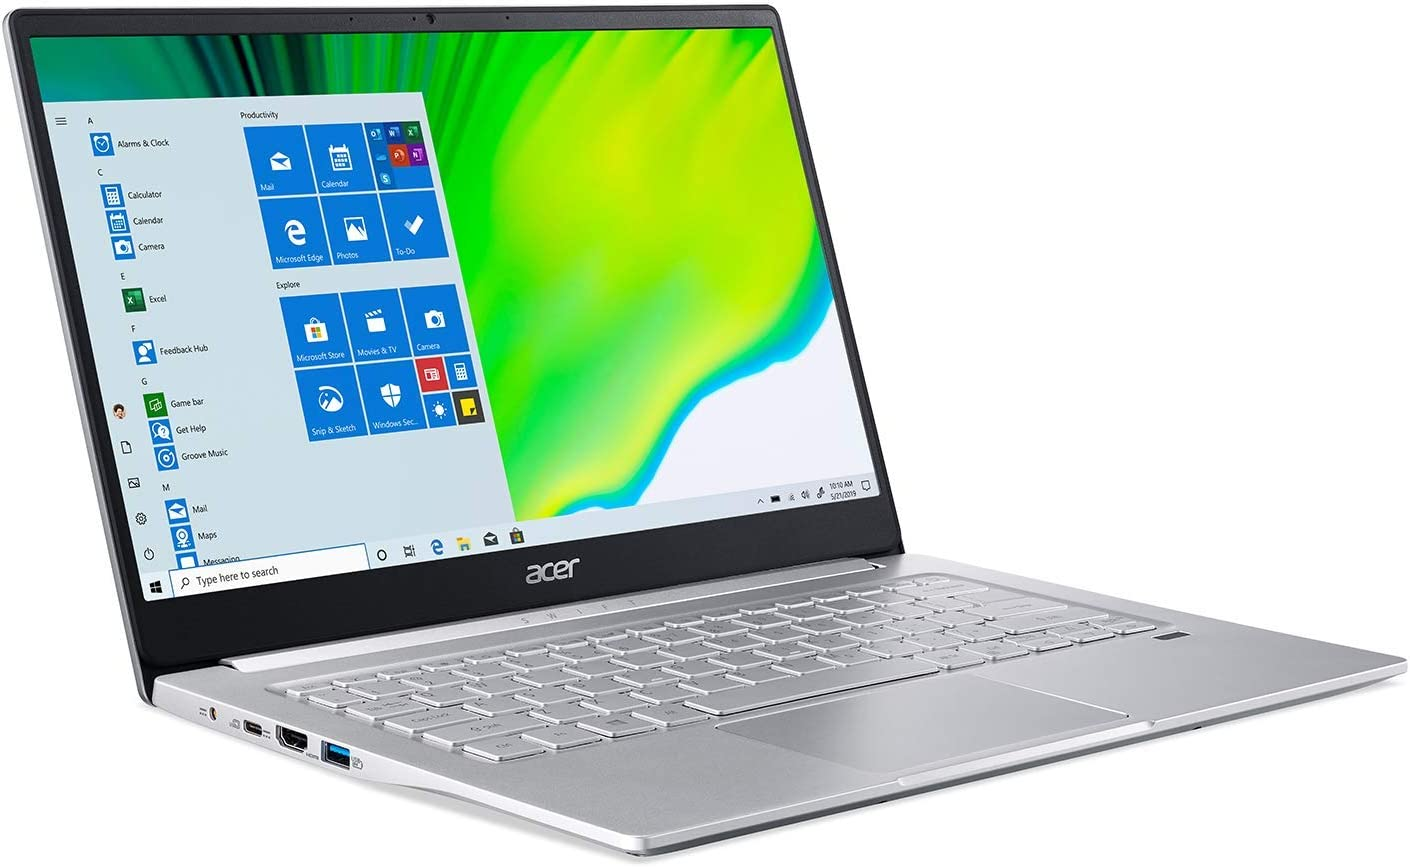 "(Renewed) 2020 Acer Swift 3 SF314 Thin & Light Laptop, 14"" FHD IPS, AMD Ryzen 5 4500U Hexa-Core up to 4.0 GHz, 8GB LPDDR4, 256GB SSD, Backlit KB, FP Reader, WiFi 6, USB-C, Win 10"